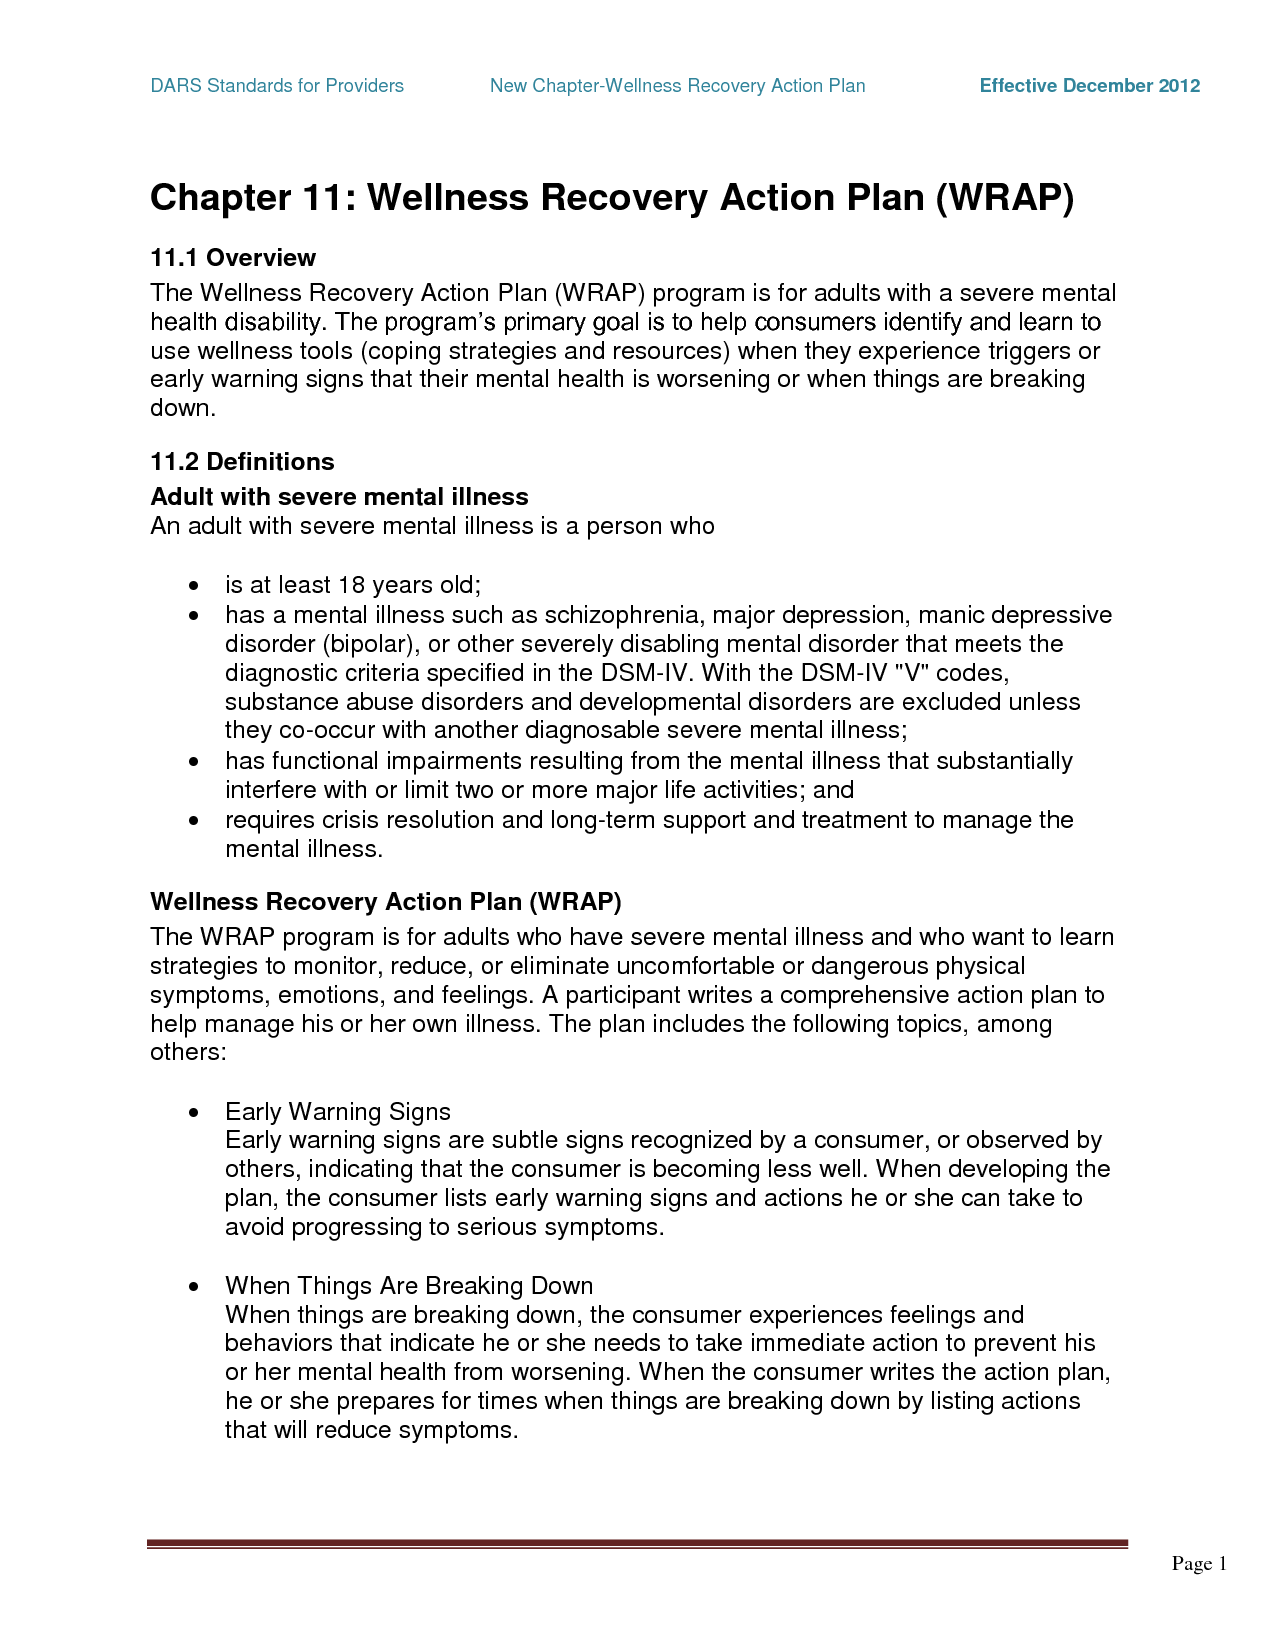 Worksheets Wellness Recovery Action Plan Worksheet wrap mental health chapter 11 wellness recovery action plan wrap